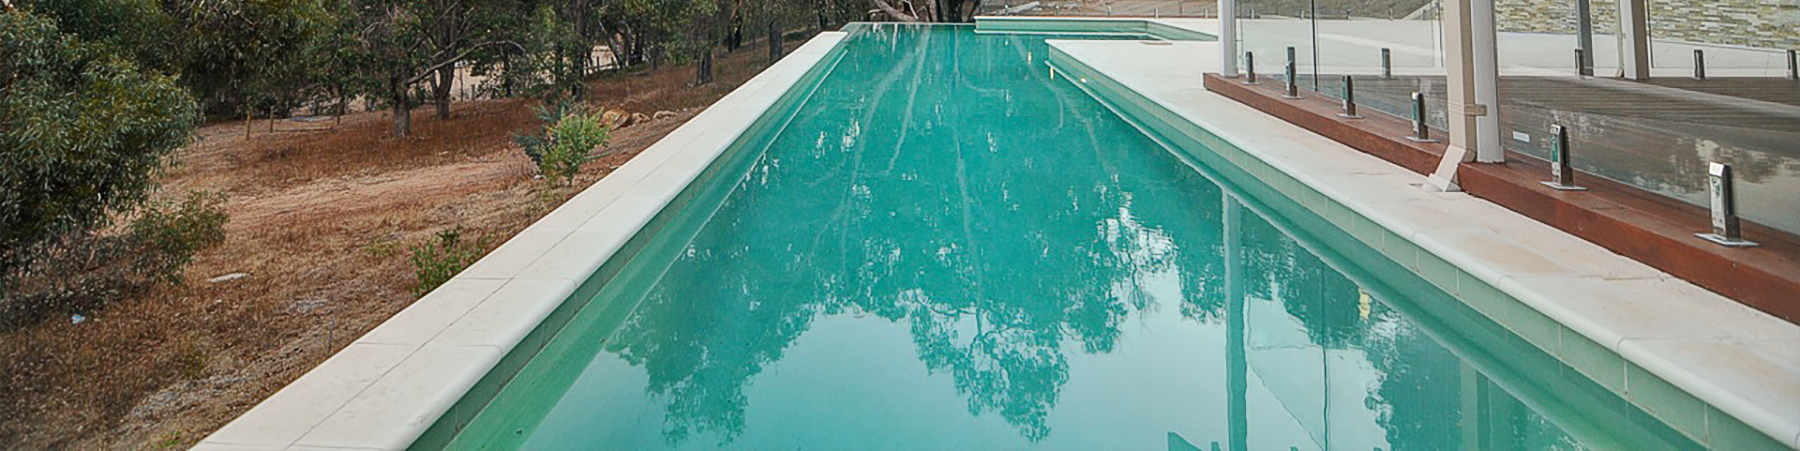 Concrete lap pools perth pools by design for Pool design perth